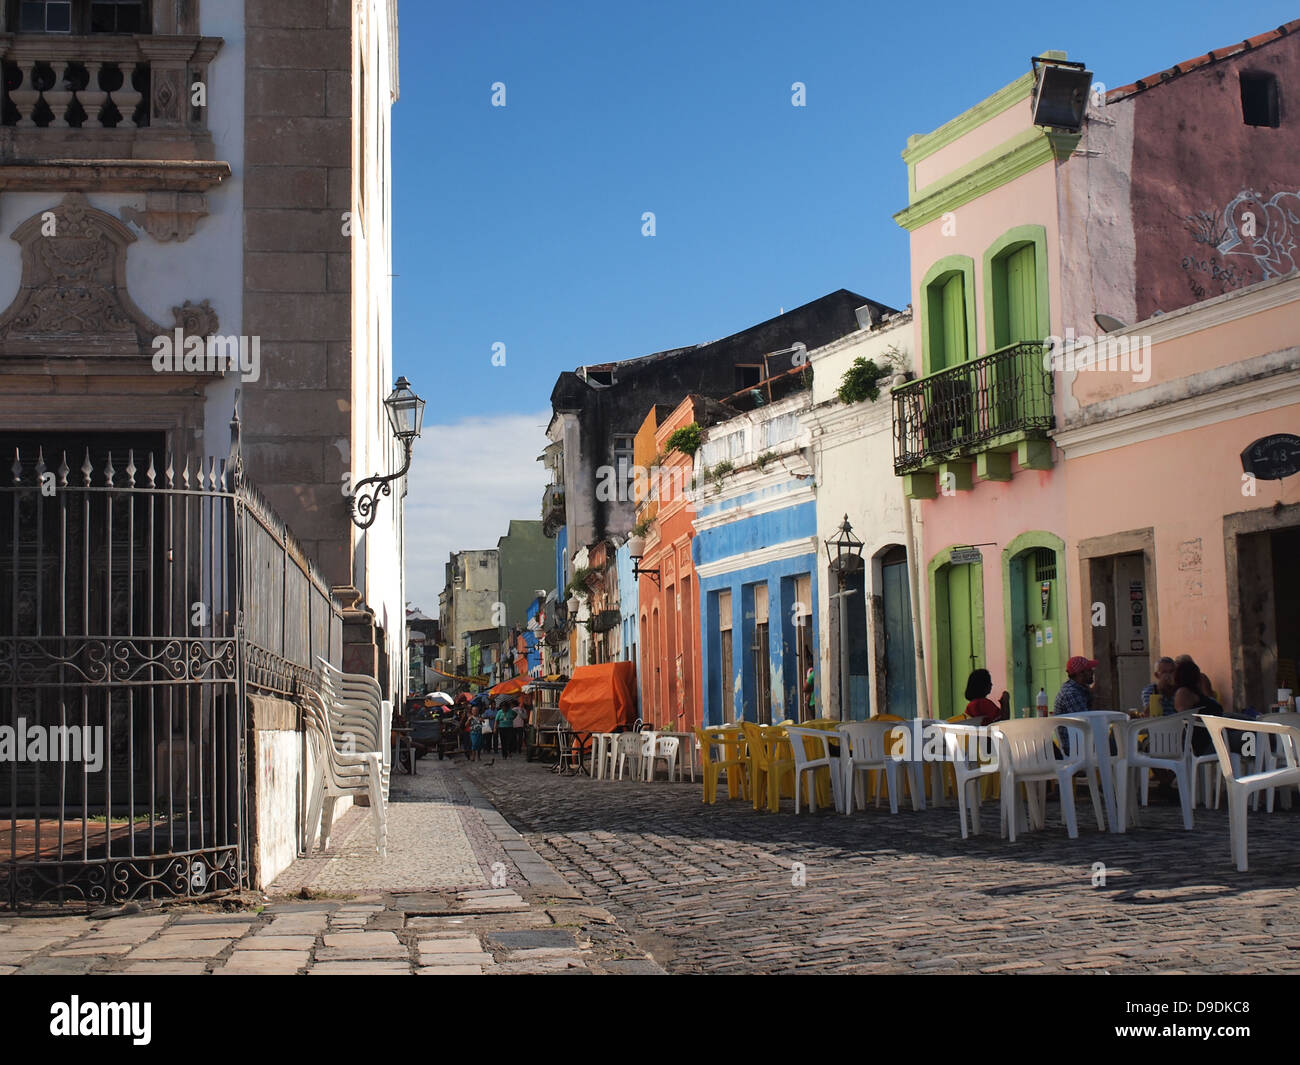 The historical center of Recife, the capital of Pernambuco region in Brazil. - Stock Image